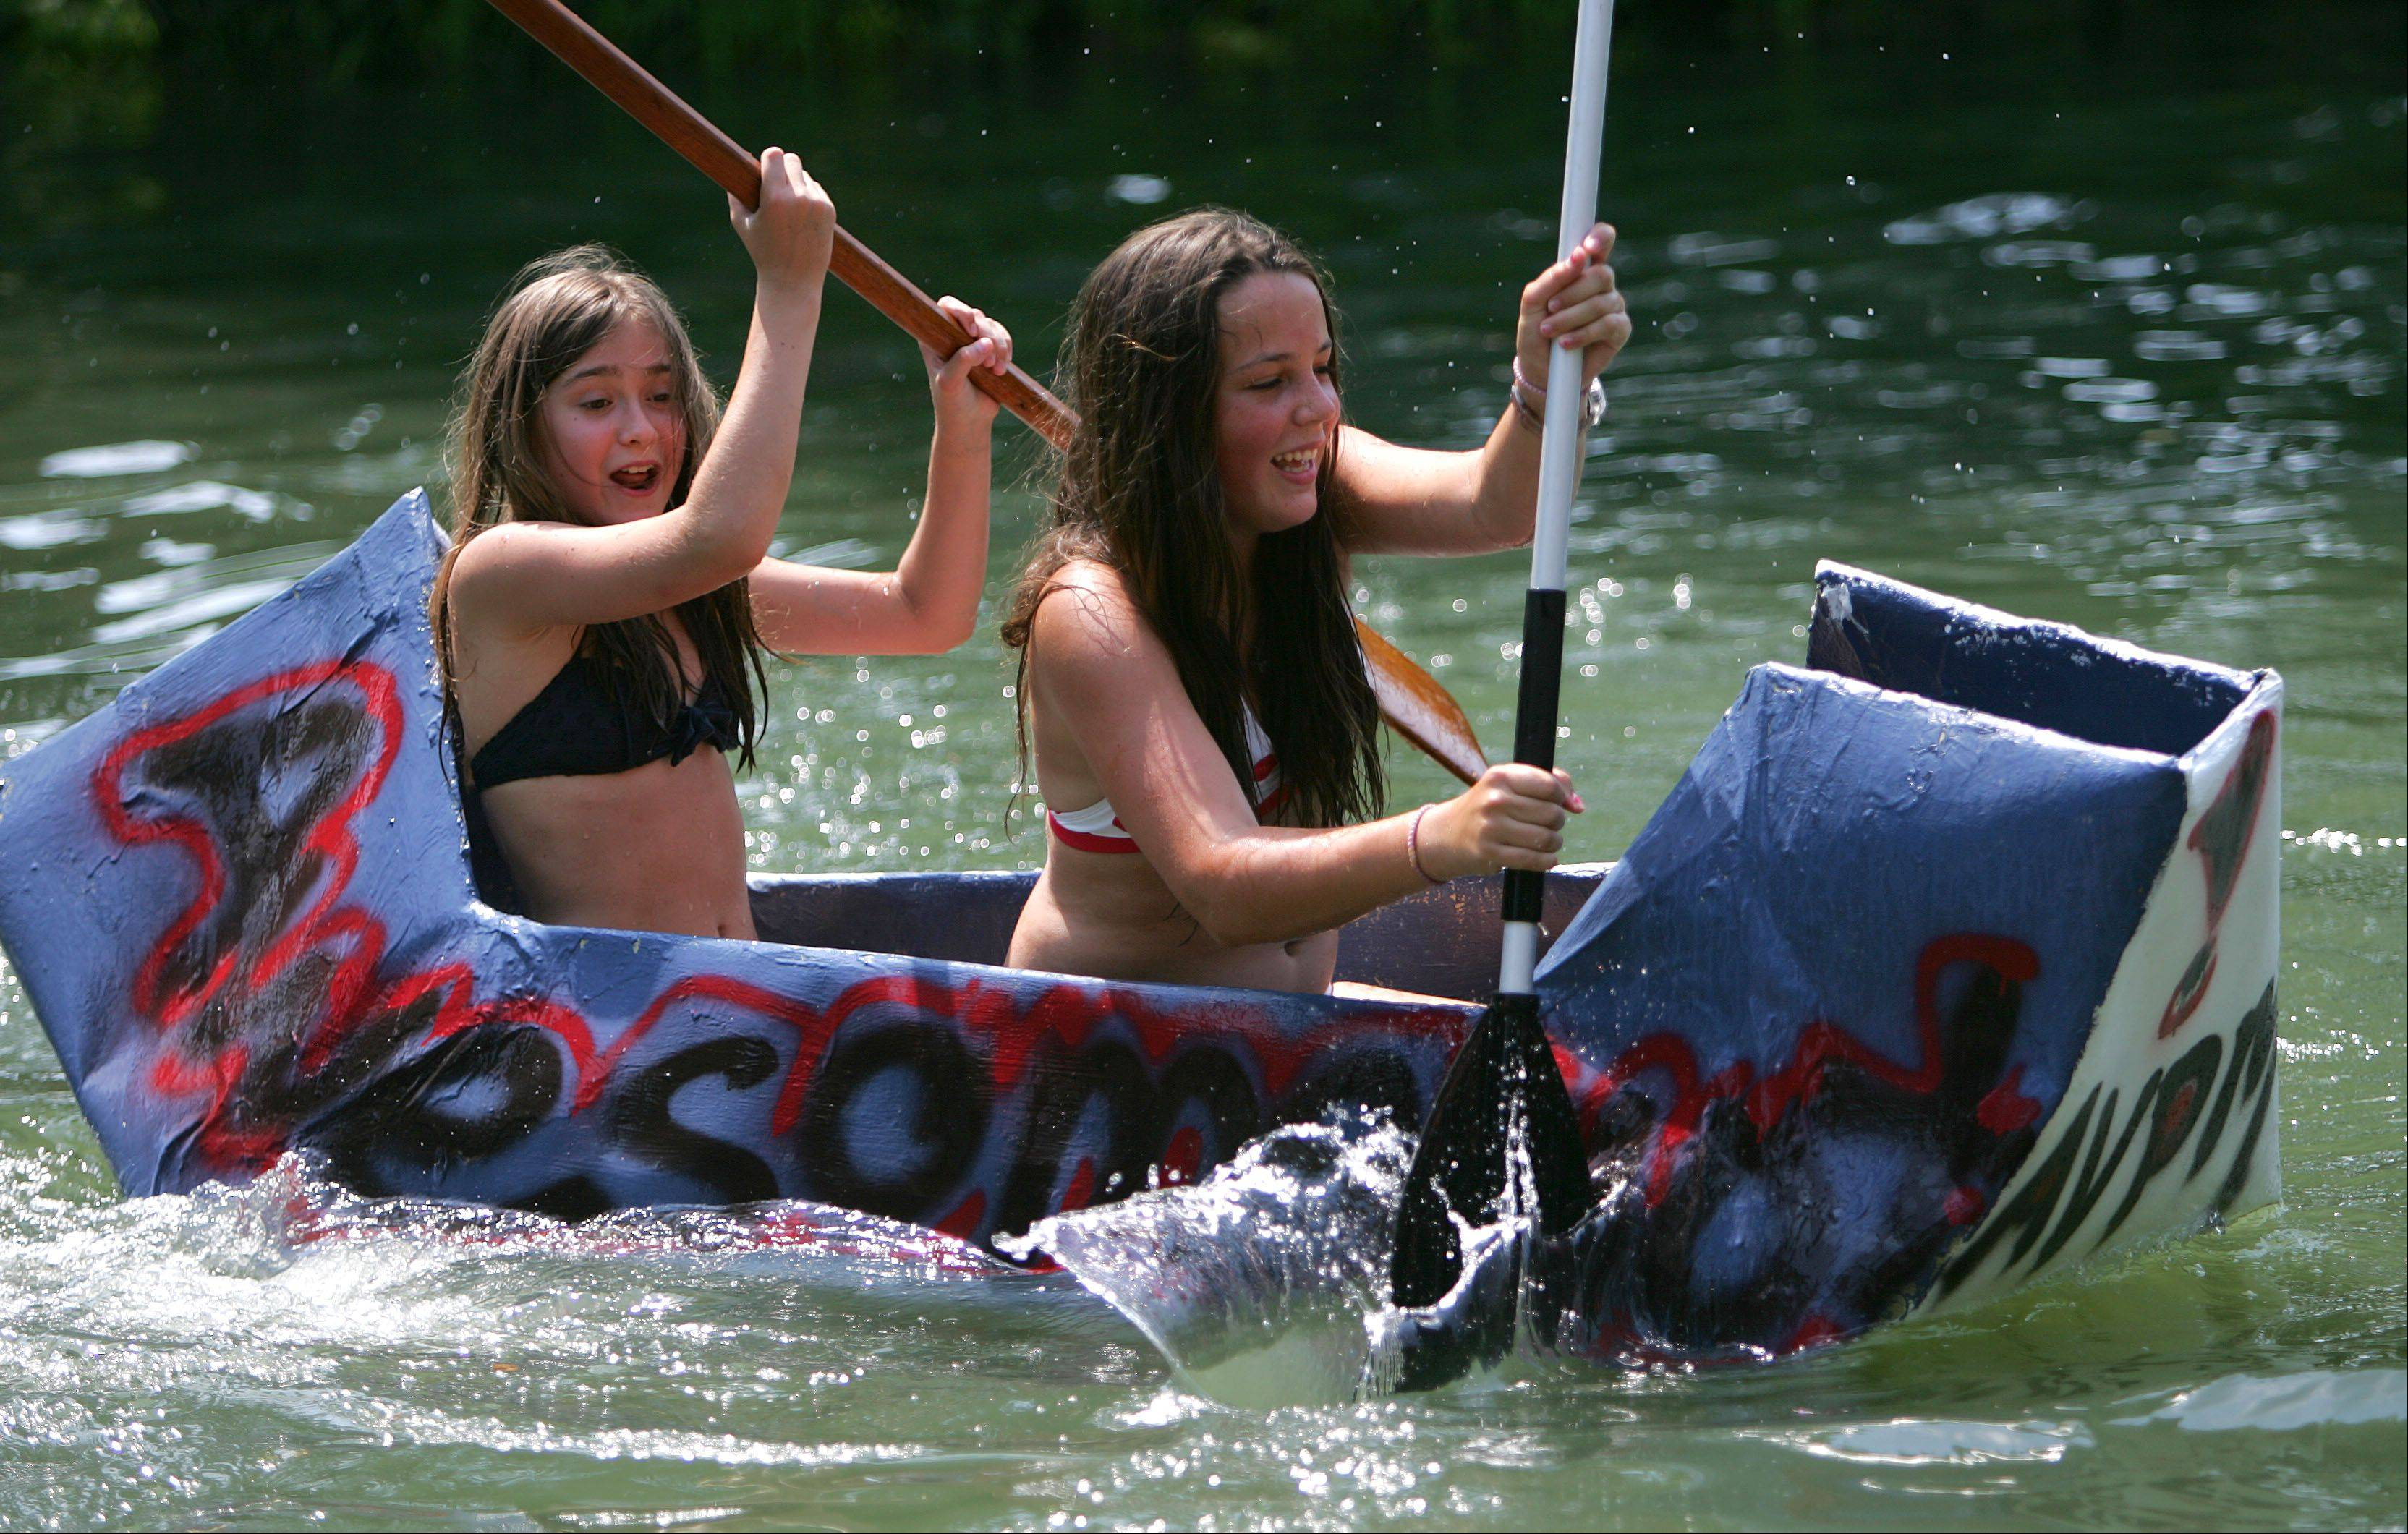 12-year-old Sahsa Pinchuk, left, and 14-year-old Naomie Lapointe, both of Lincolnshire compete in a cardboard boat regatta as Lincolnshire held their Red White and Boom 2012 event on Wednesday at Spring Lake Park.